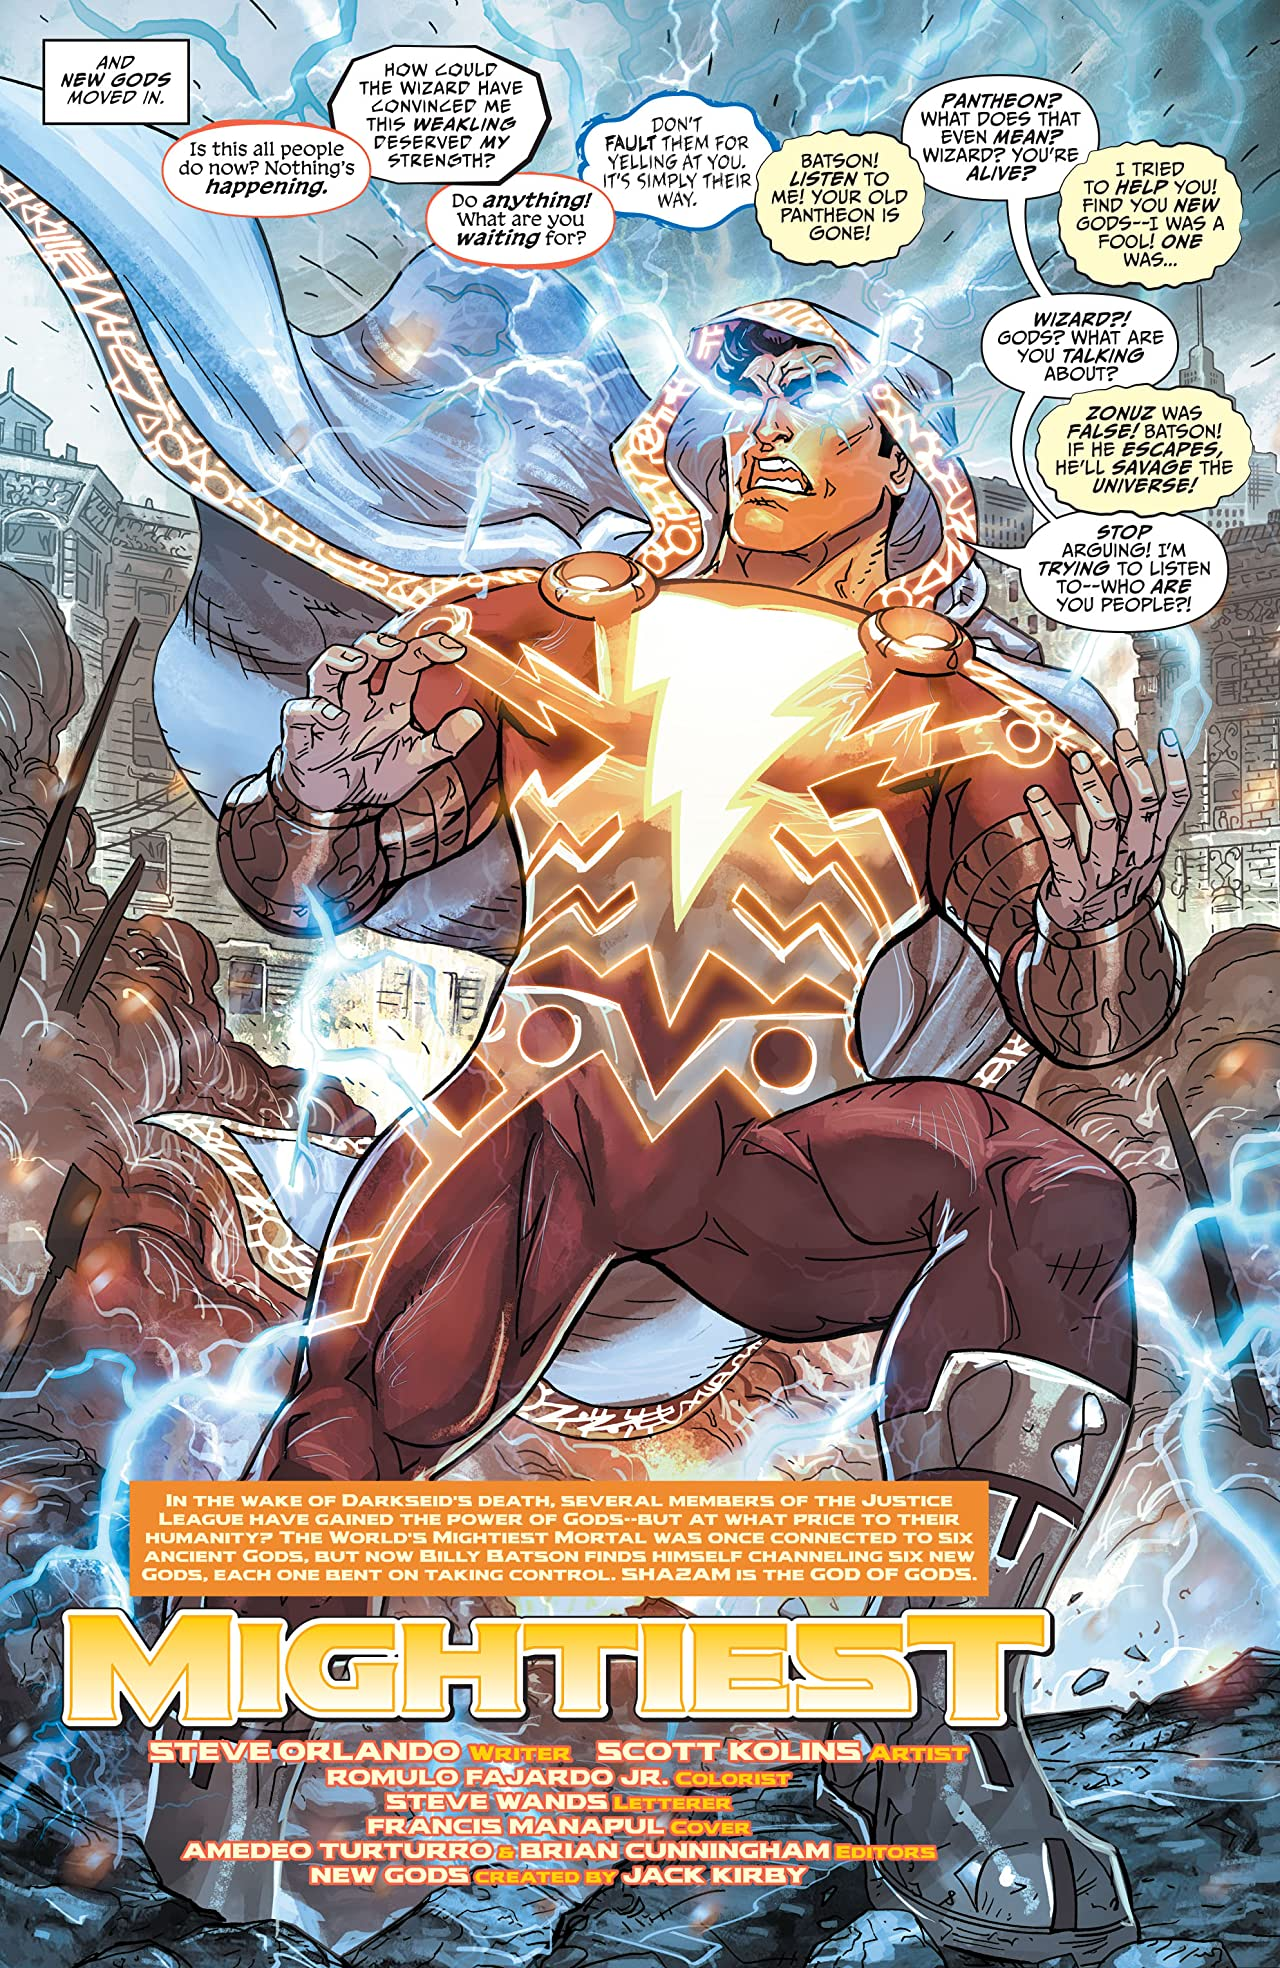 Justice League: The Darkseid War: Shazam (2015) #1